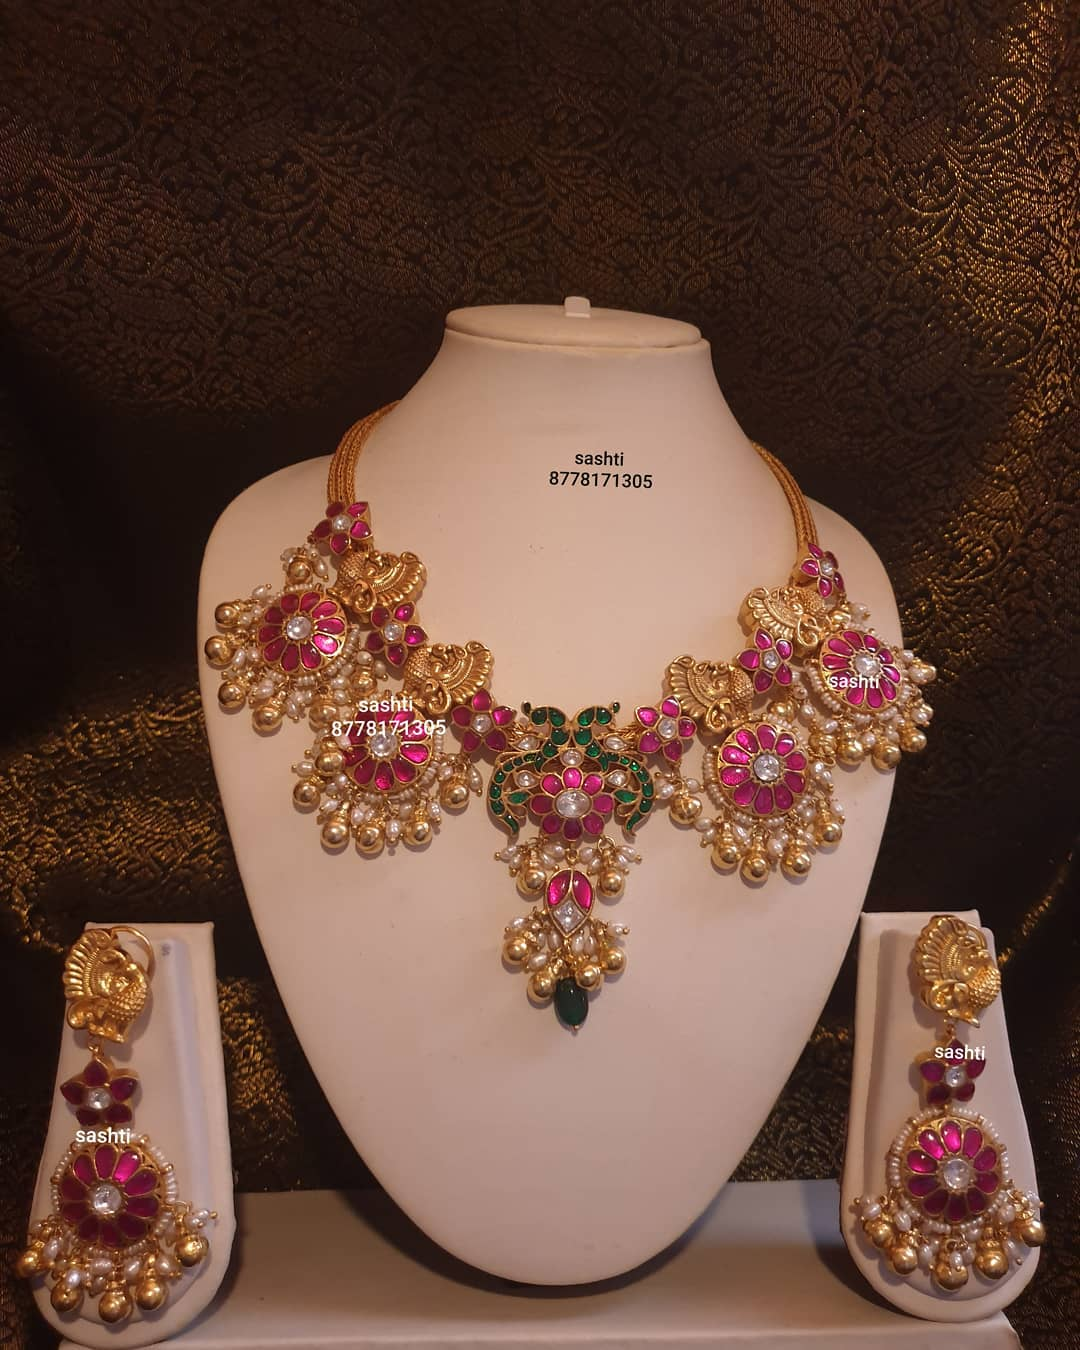 Stunning silver necklace with gold polish. Necklace studded with multi color stones. 2021-01-02